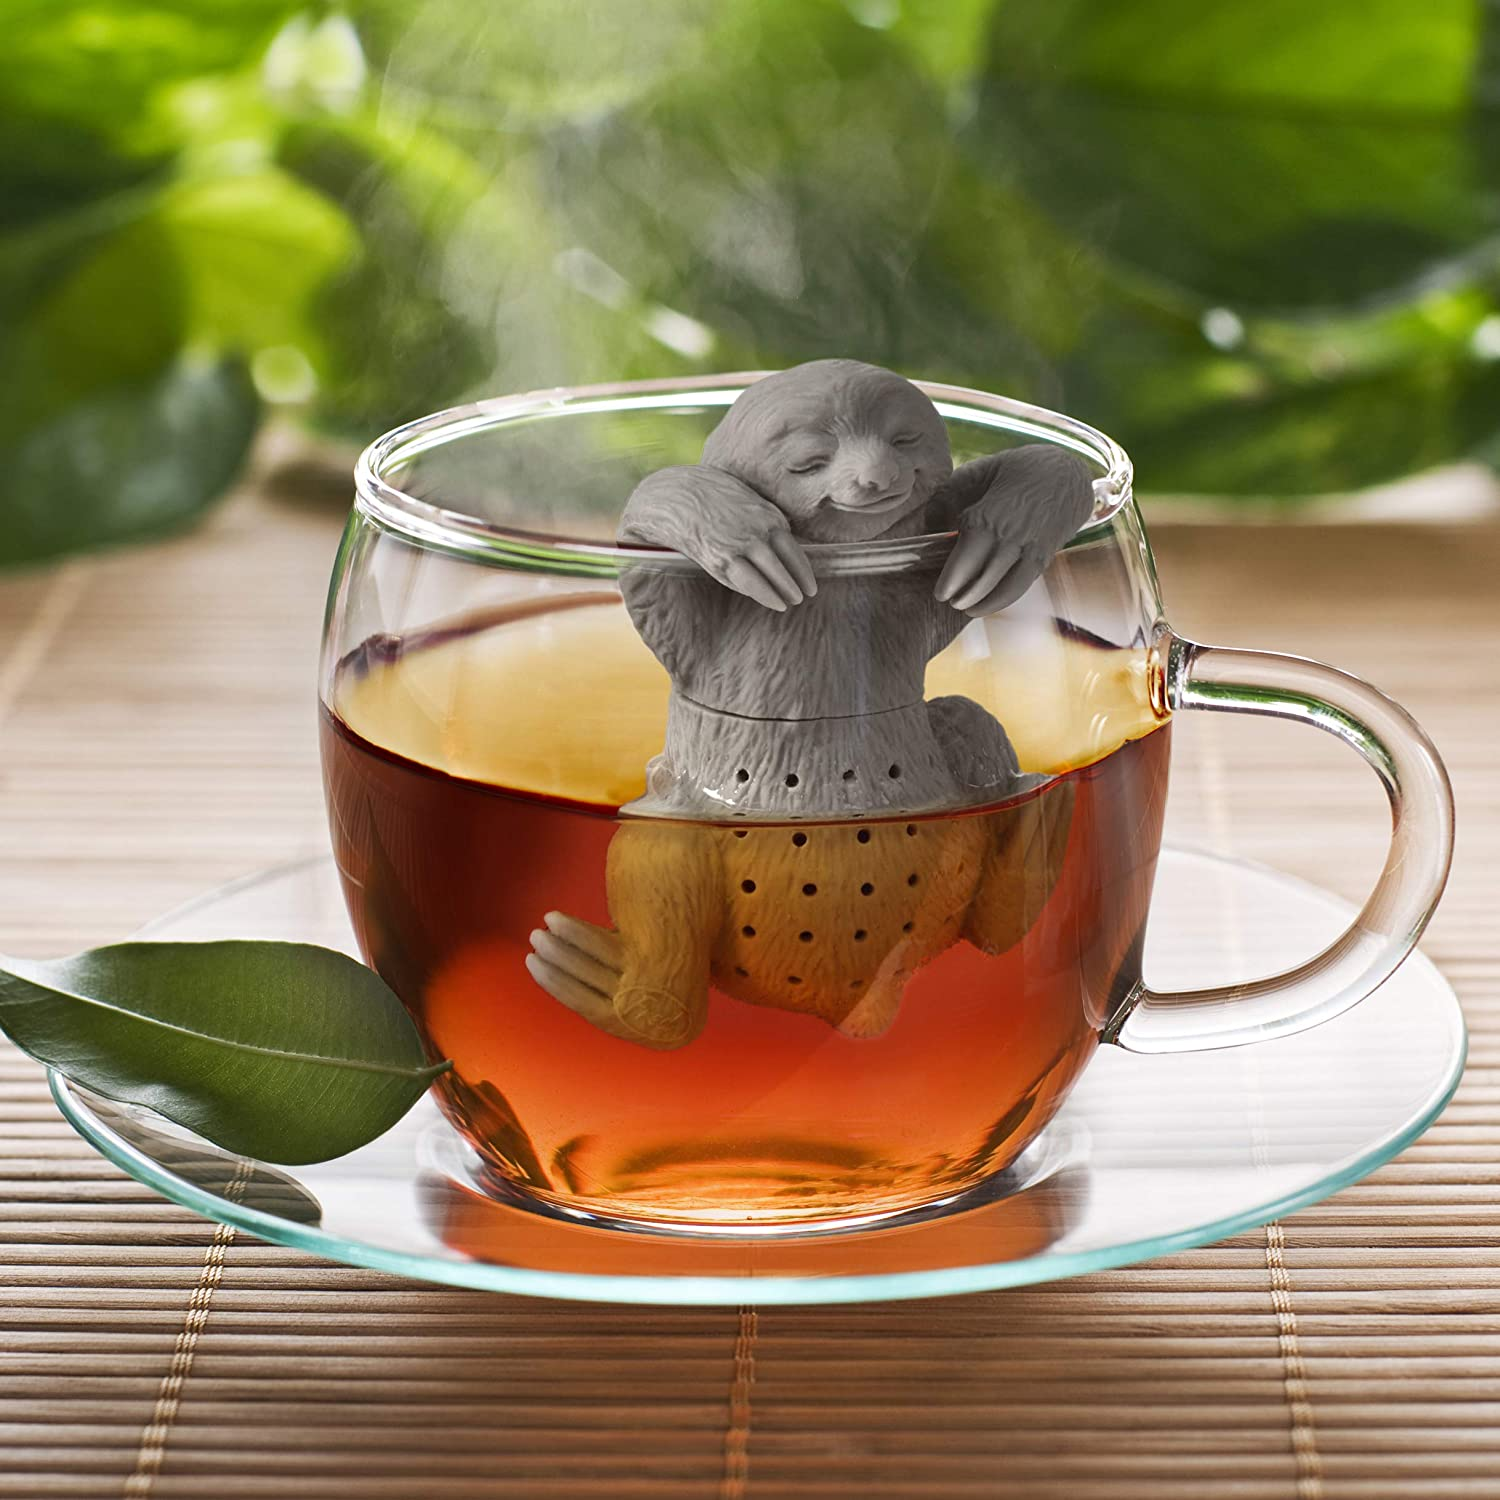 sloth-gifts-tea-infuser